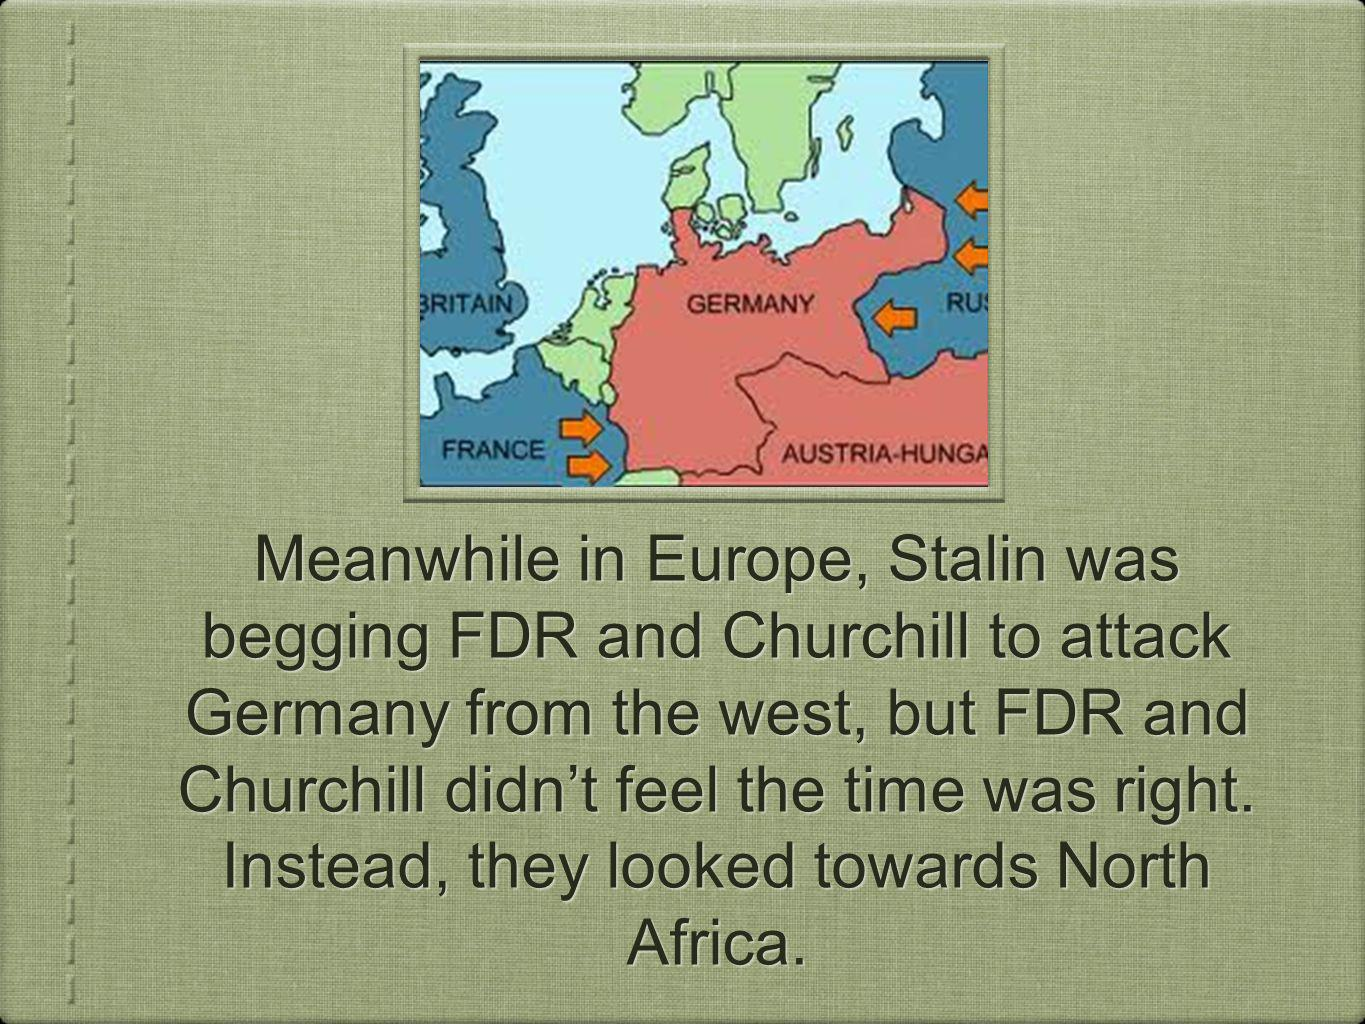 Meanwhile in Europe, Stalin was begging FDR and Churchill to attack Germany from the west, but FDR and Churchill didnt feel the time was right.